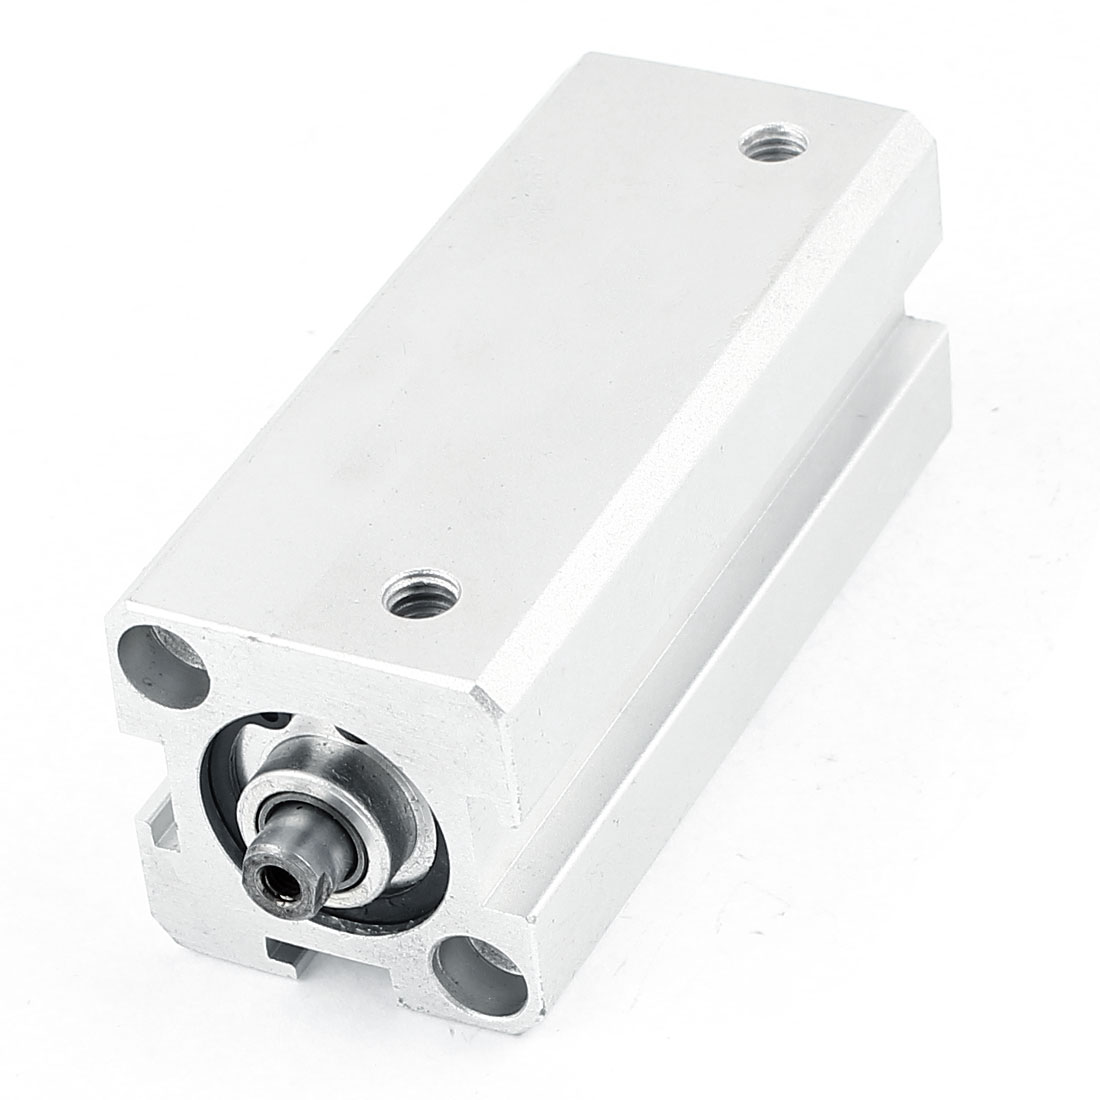 SDA16x50 16mm Bore 50mm Stroke Single Rod Aluminum Alloy Pneumatic Air Cylinder